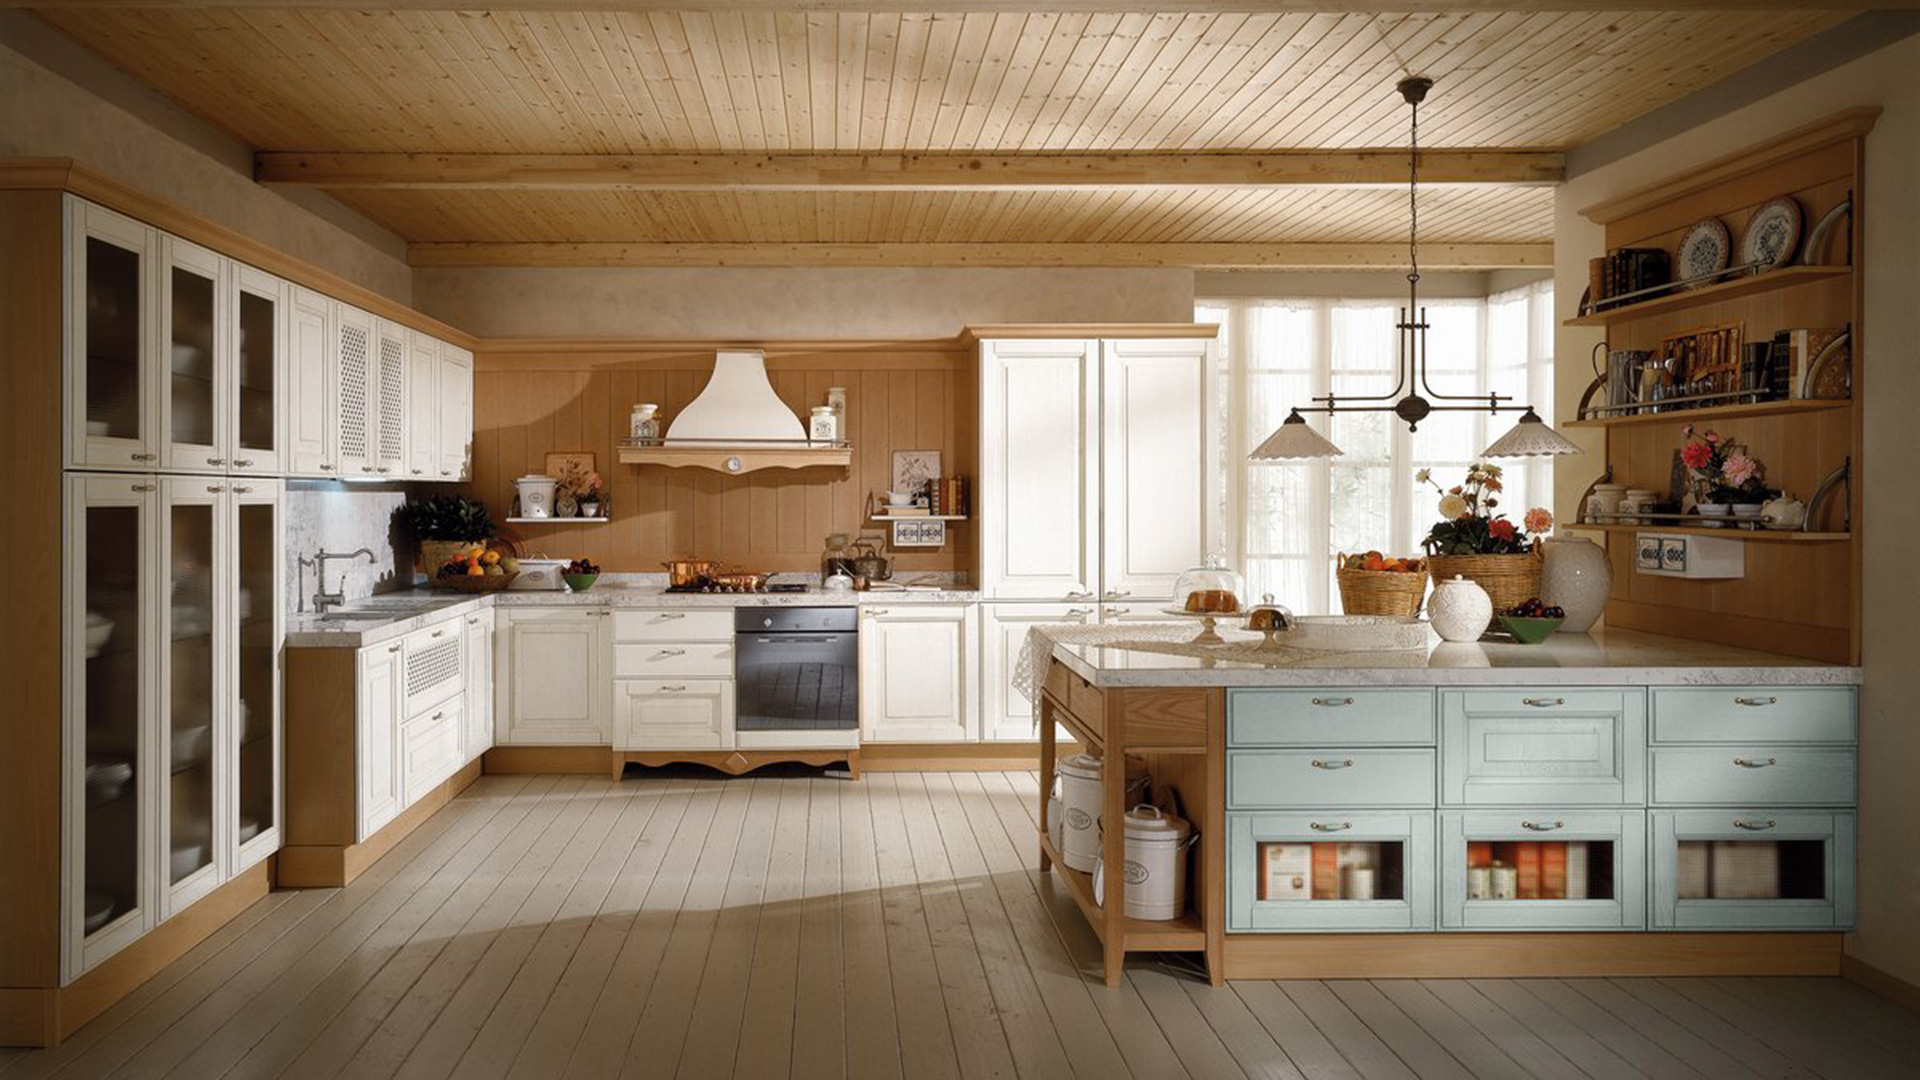 Cucina Classica Con Dispensa Cucine Con Dispensa Angolare Cool Awesome Cucine Moderne Con